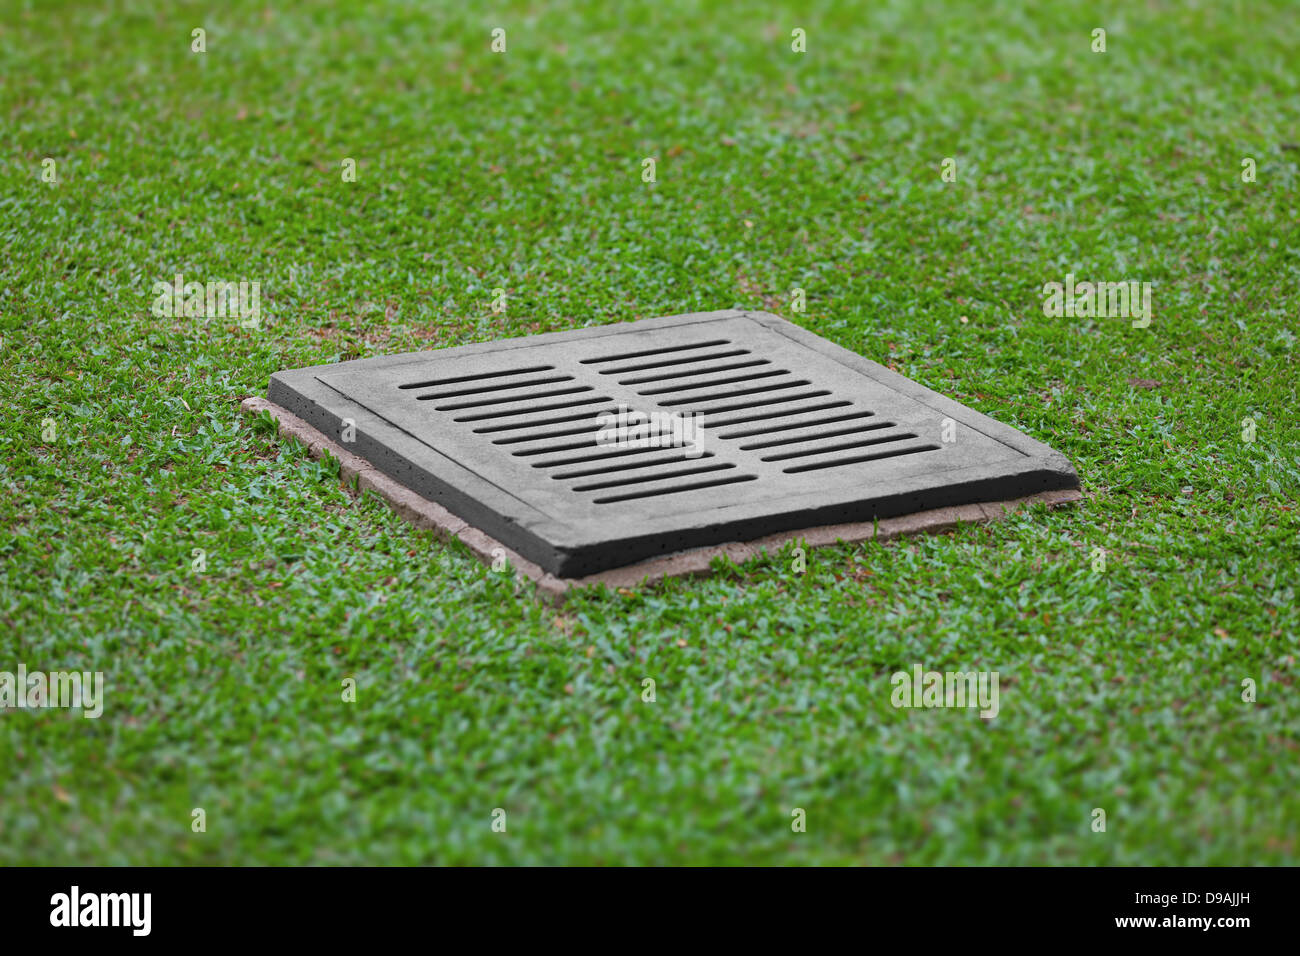 the sewer grate on the lawn drainage for heavy rain stock image - Garden Drainage